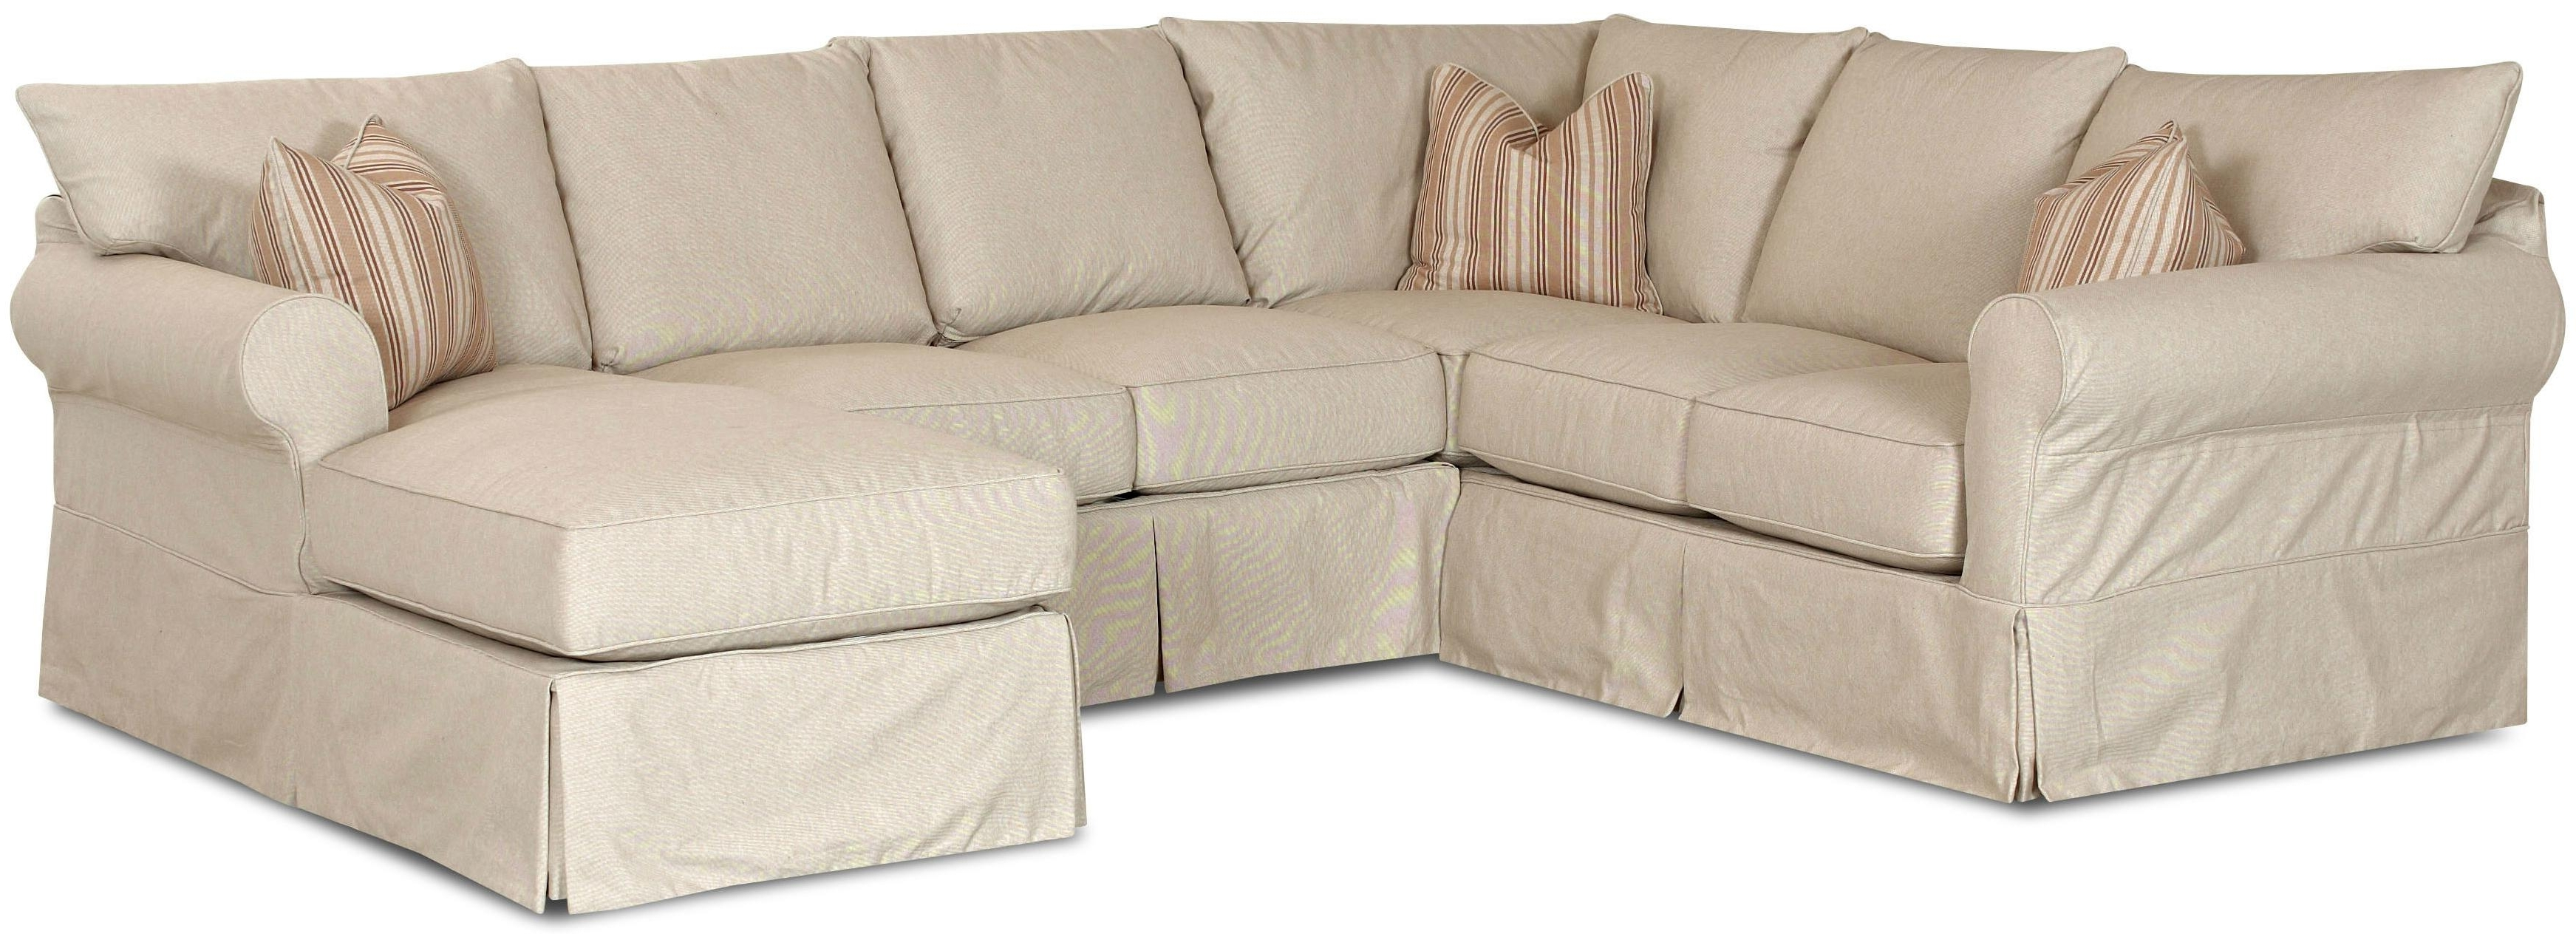 Famous Klaussner Jenny Slip Cover Sectional Sofa With Right Chaise – Ahfa With Regard To Slipcovers For Sectionals With Chaise (View 6 of 15)